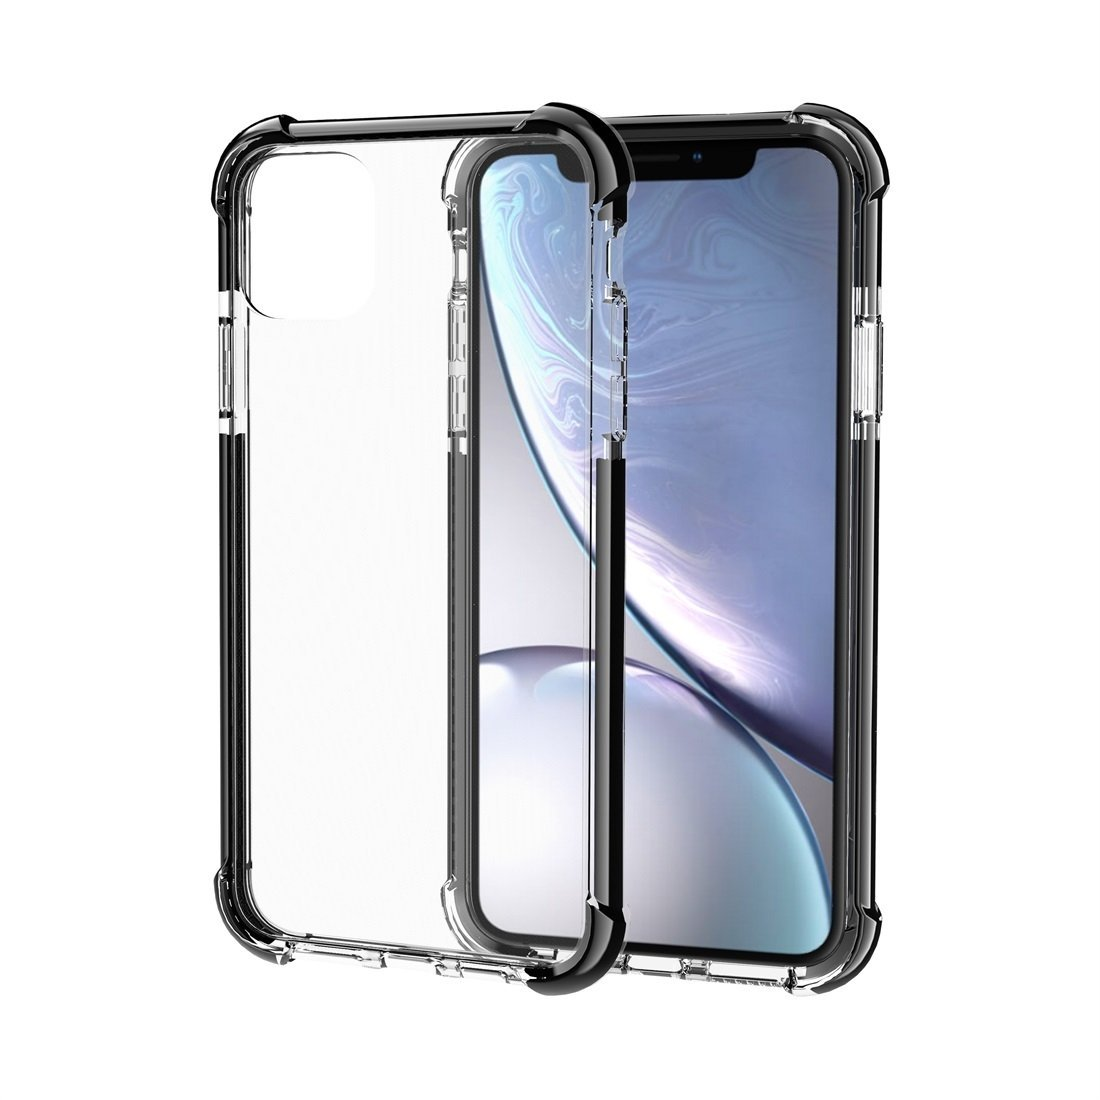 AMZER SlimGrip Bumper Hybrid Case for iPhone 11